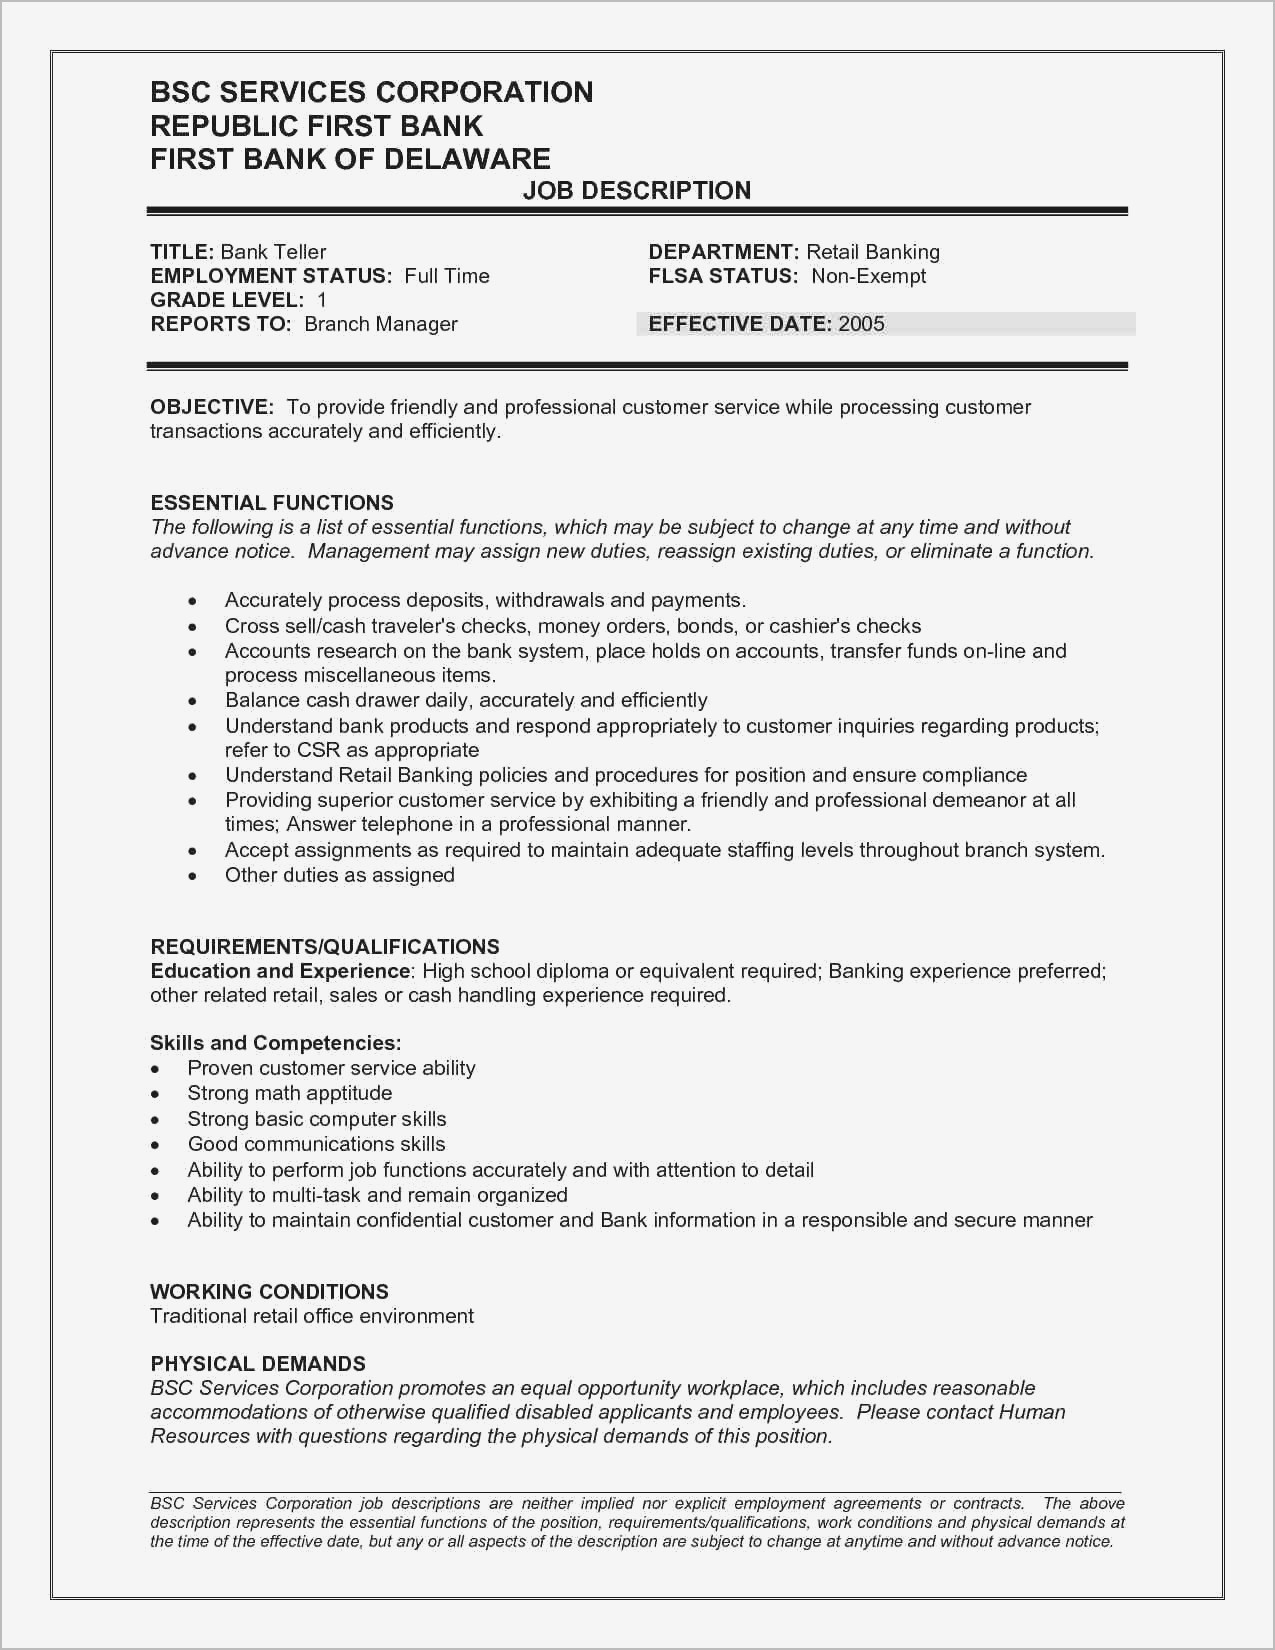 Customer Service Description for Resume - Basic Resume Examples for Retail Jobs Resume Resume Examples